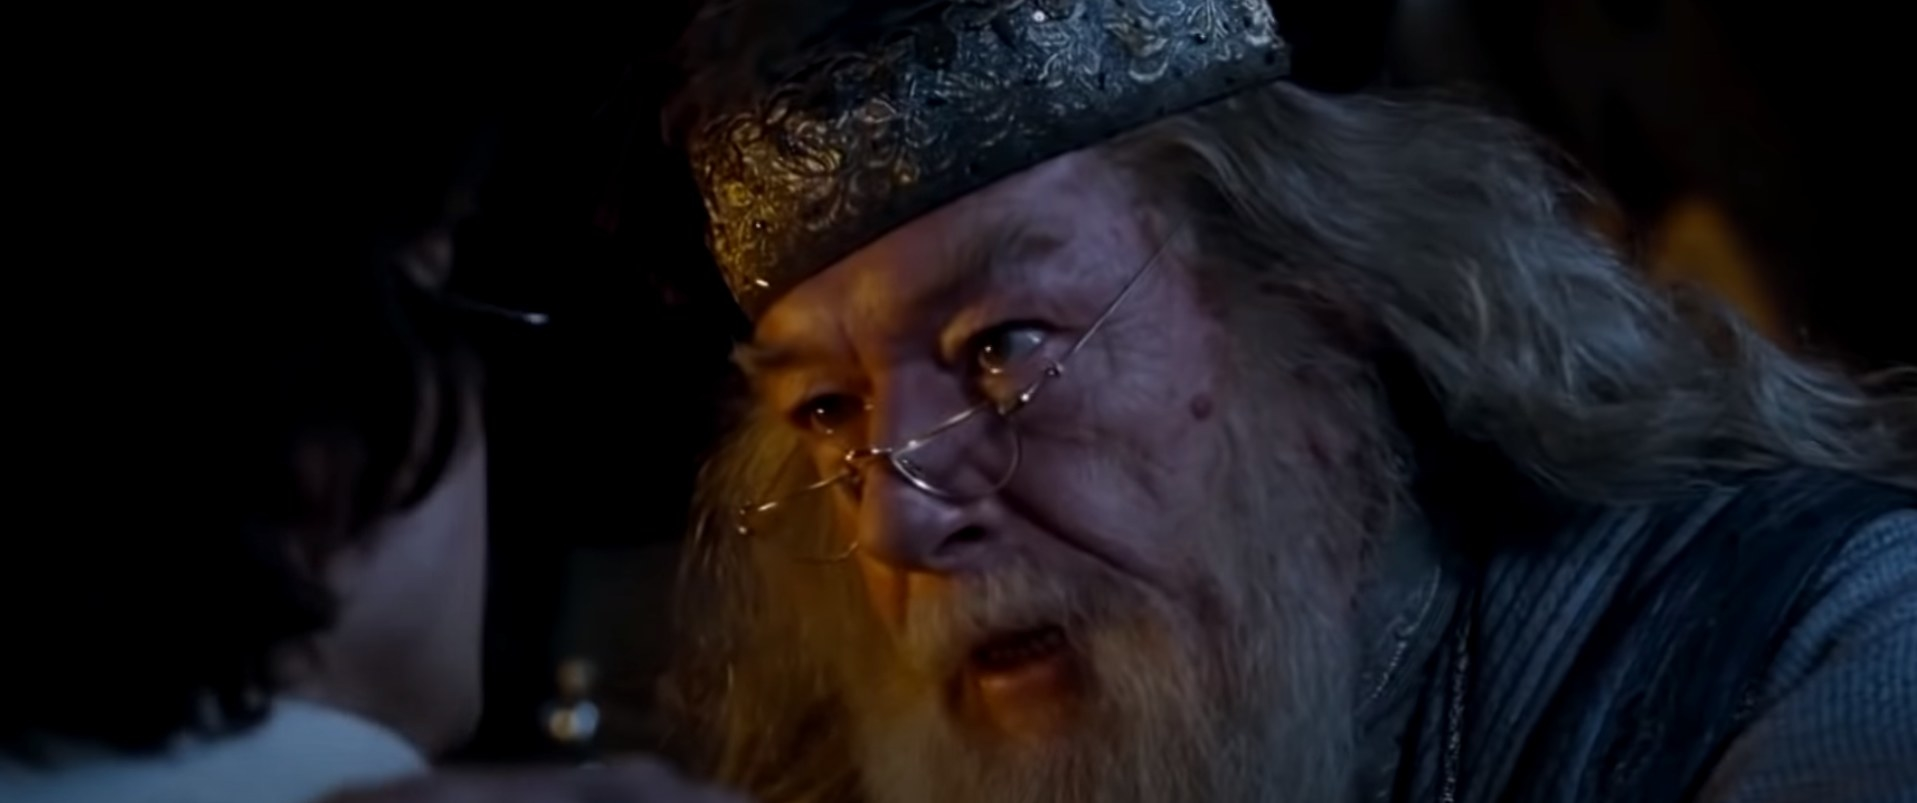 Dumbledore screaming in Harry's face